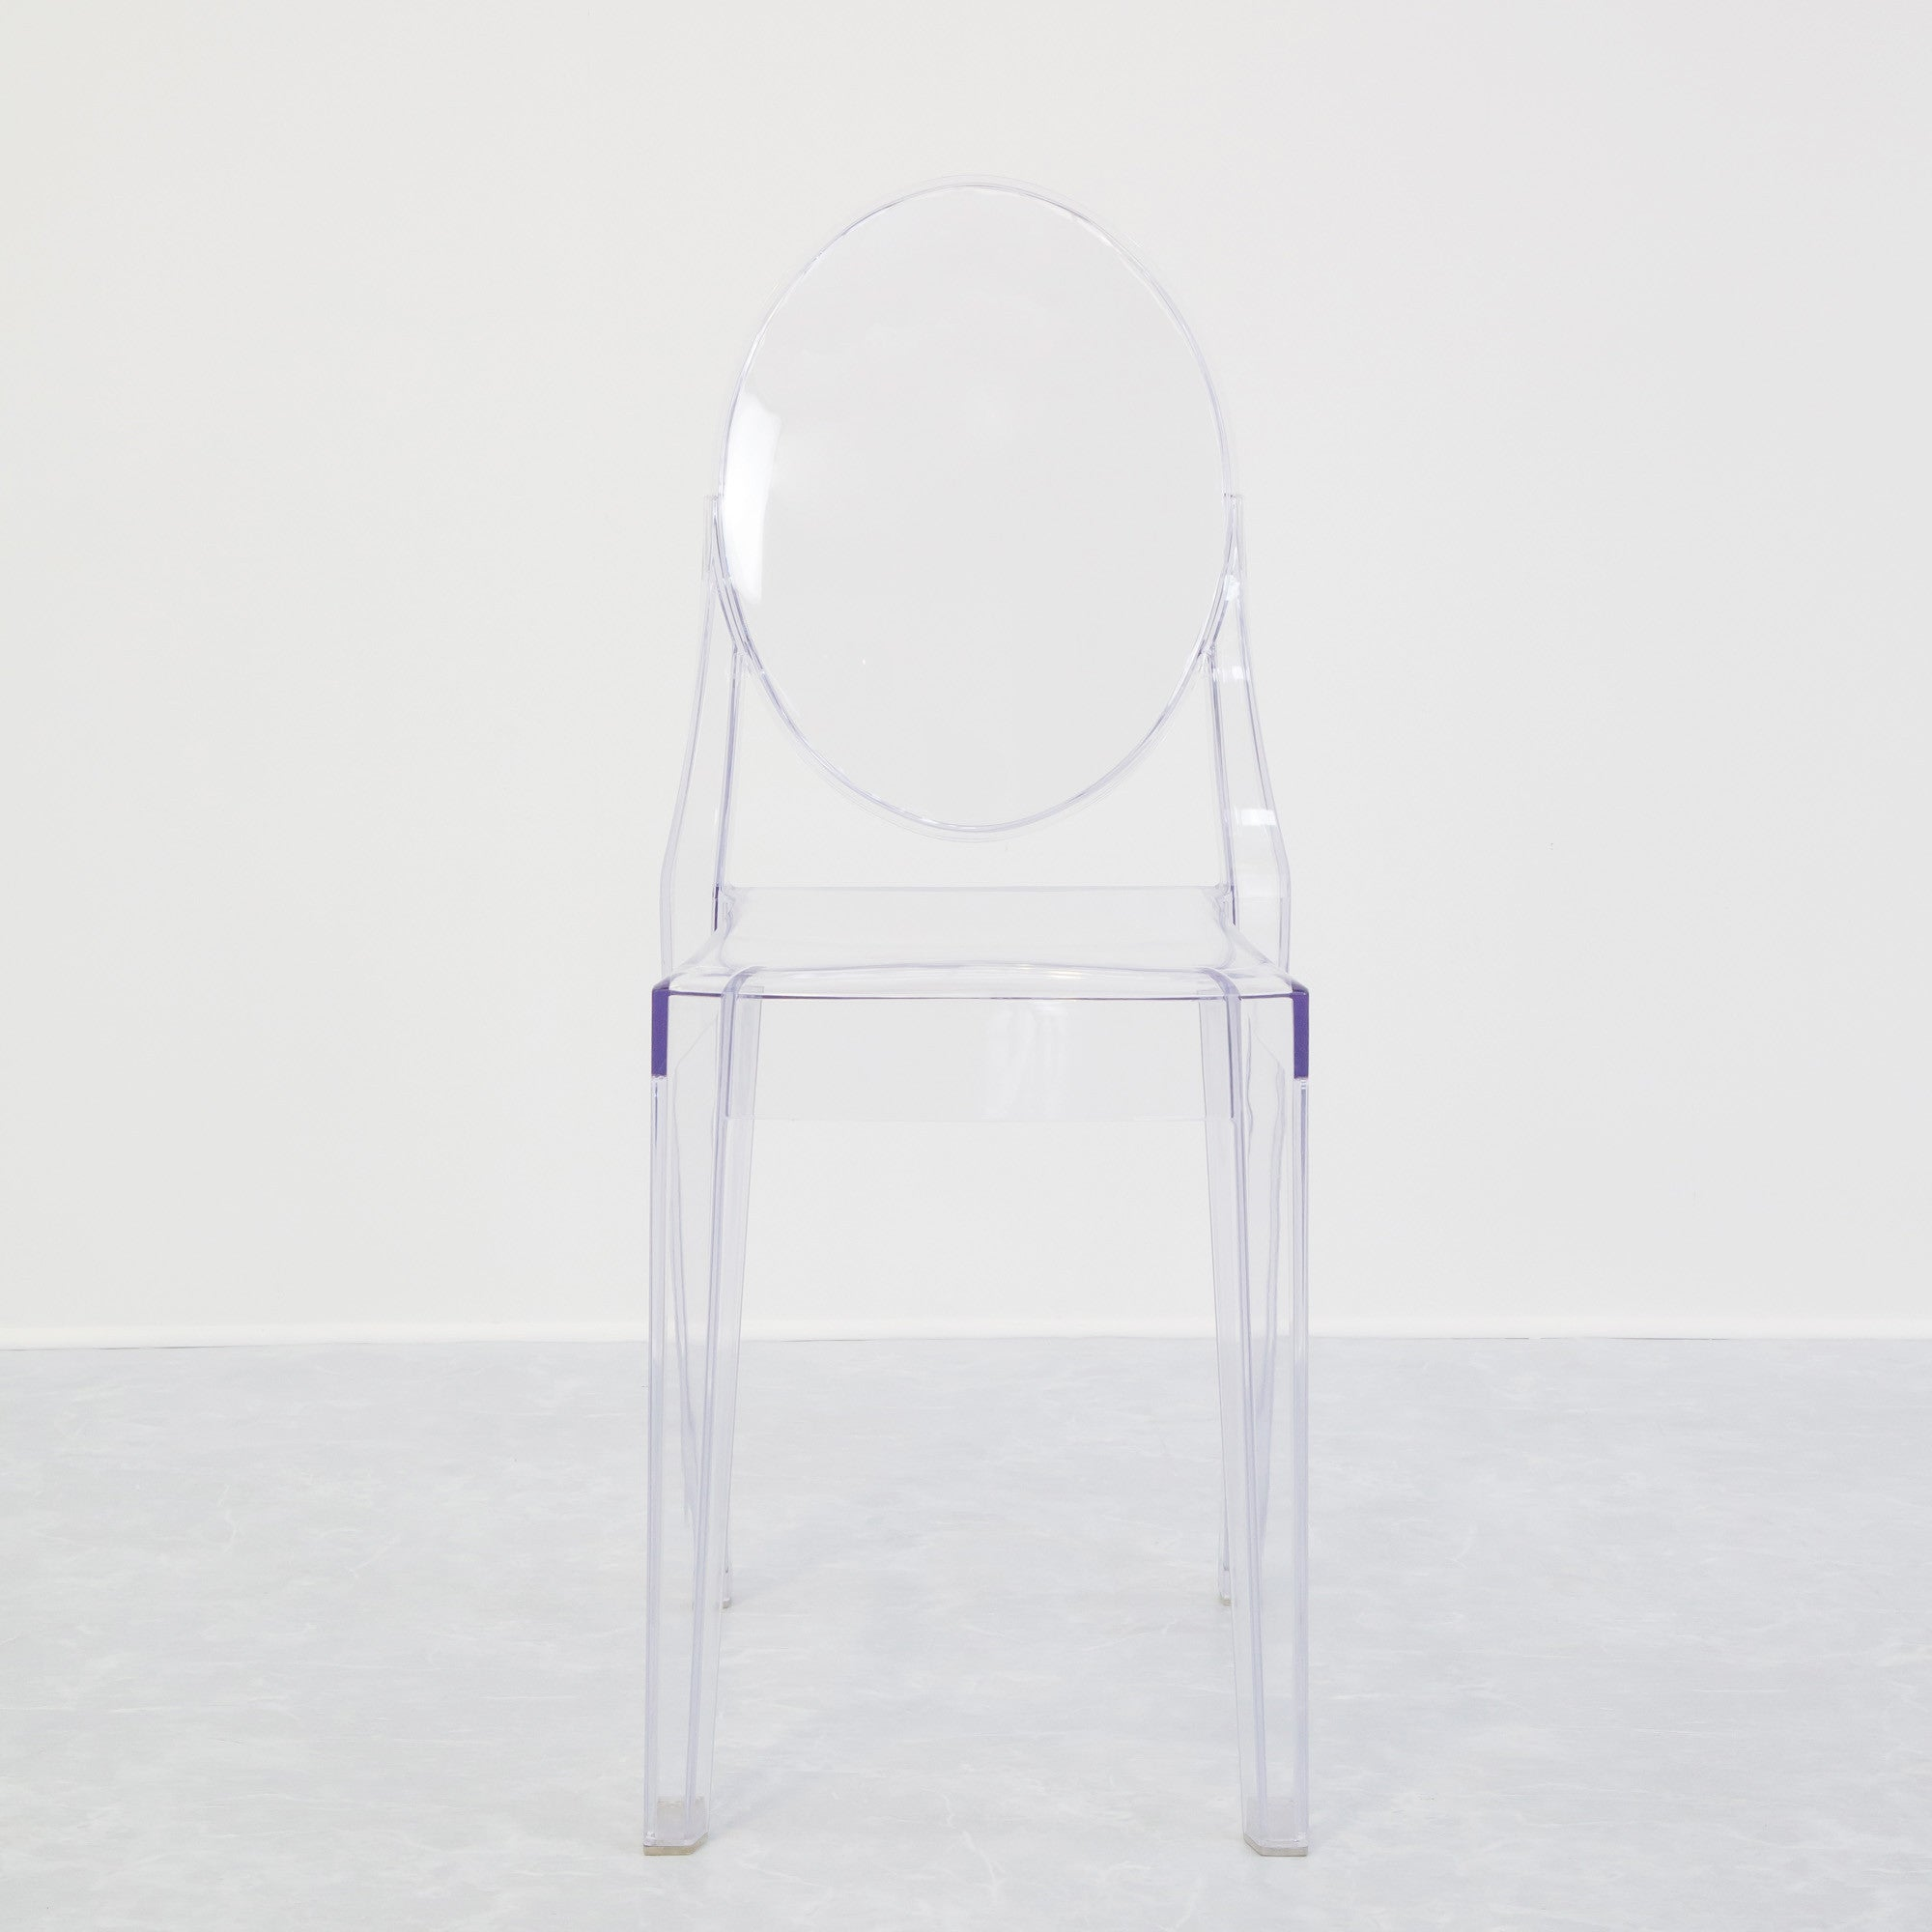 works d full classic ost interesting rieur with starck chaise of chaises design in int a victoria ghost chair louis prix size kartell occasion